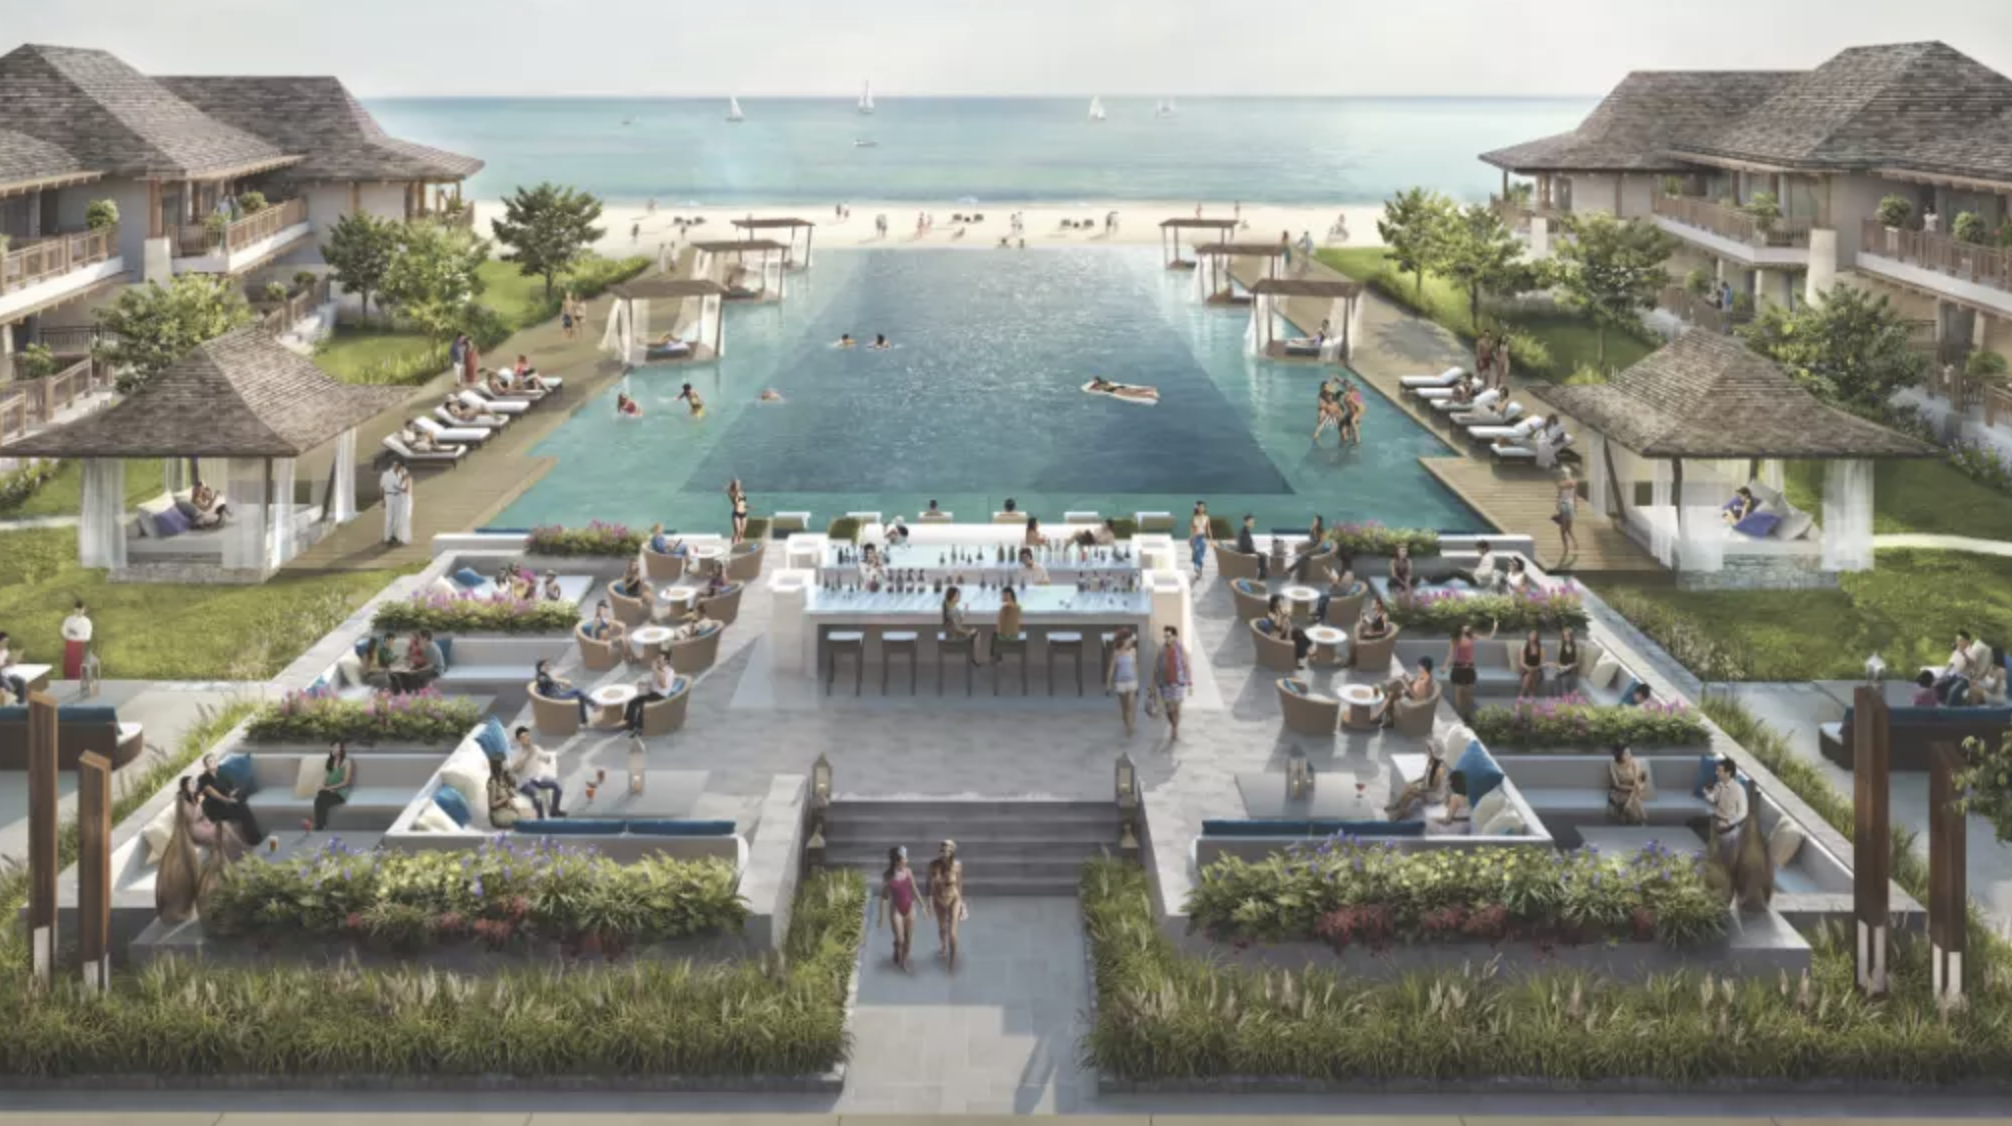 An artist's impression of the island redevelopment released earlier this year